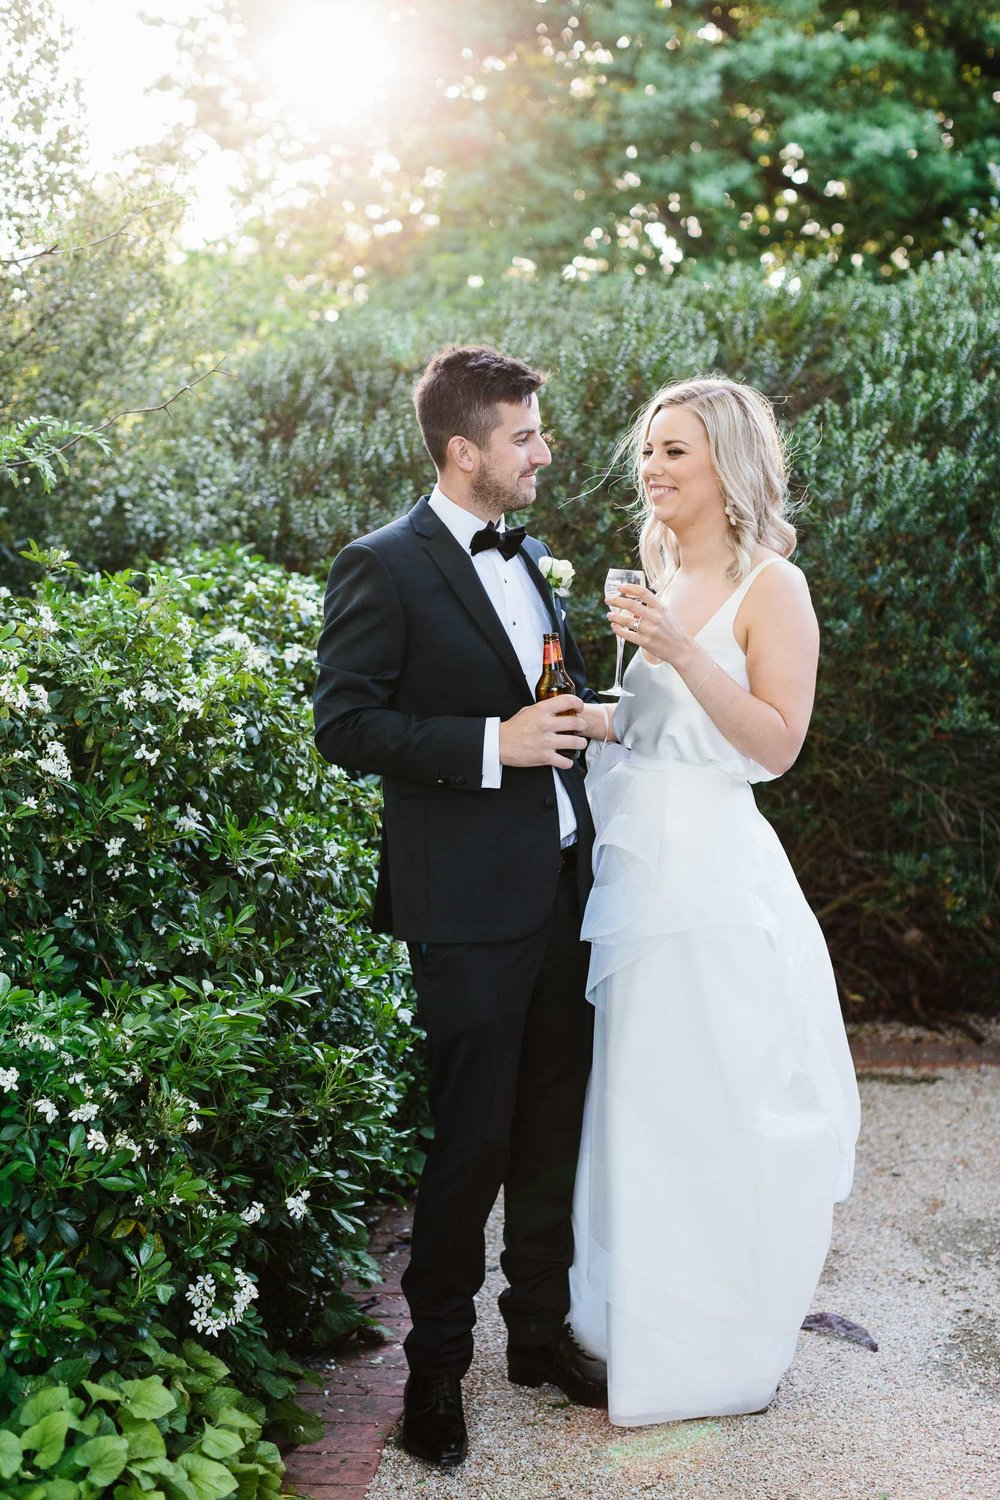 Kas-Richards-Wedding-Photographer-Country-Winery-Wedding-One-Day-Bridal-Gown-65.jpg